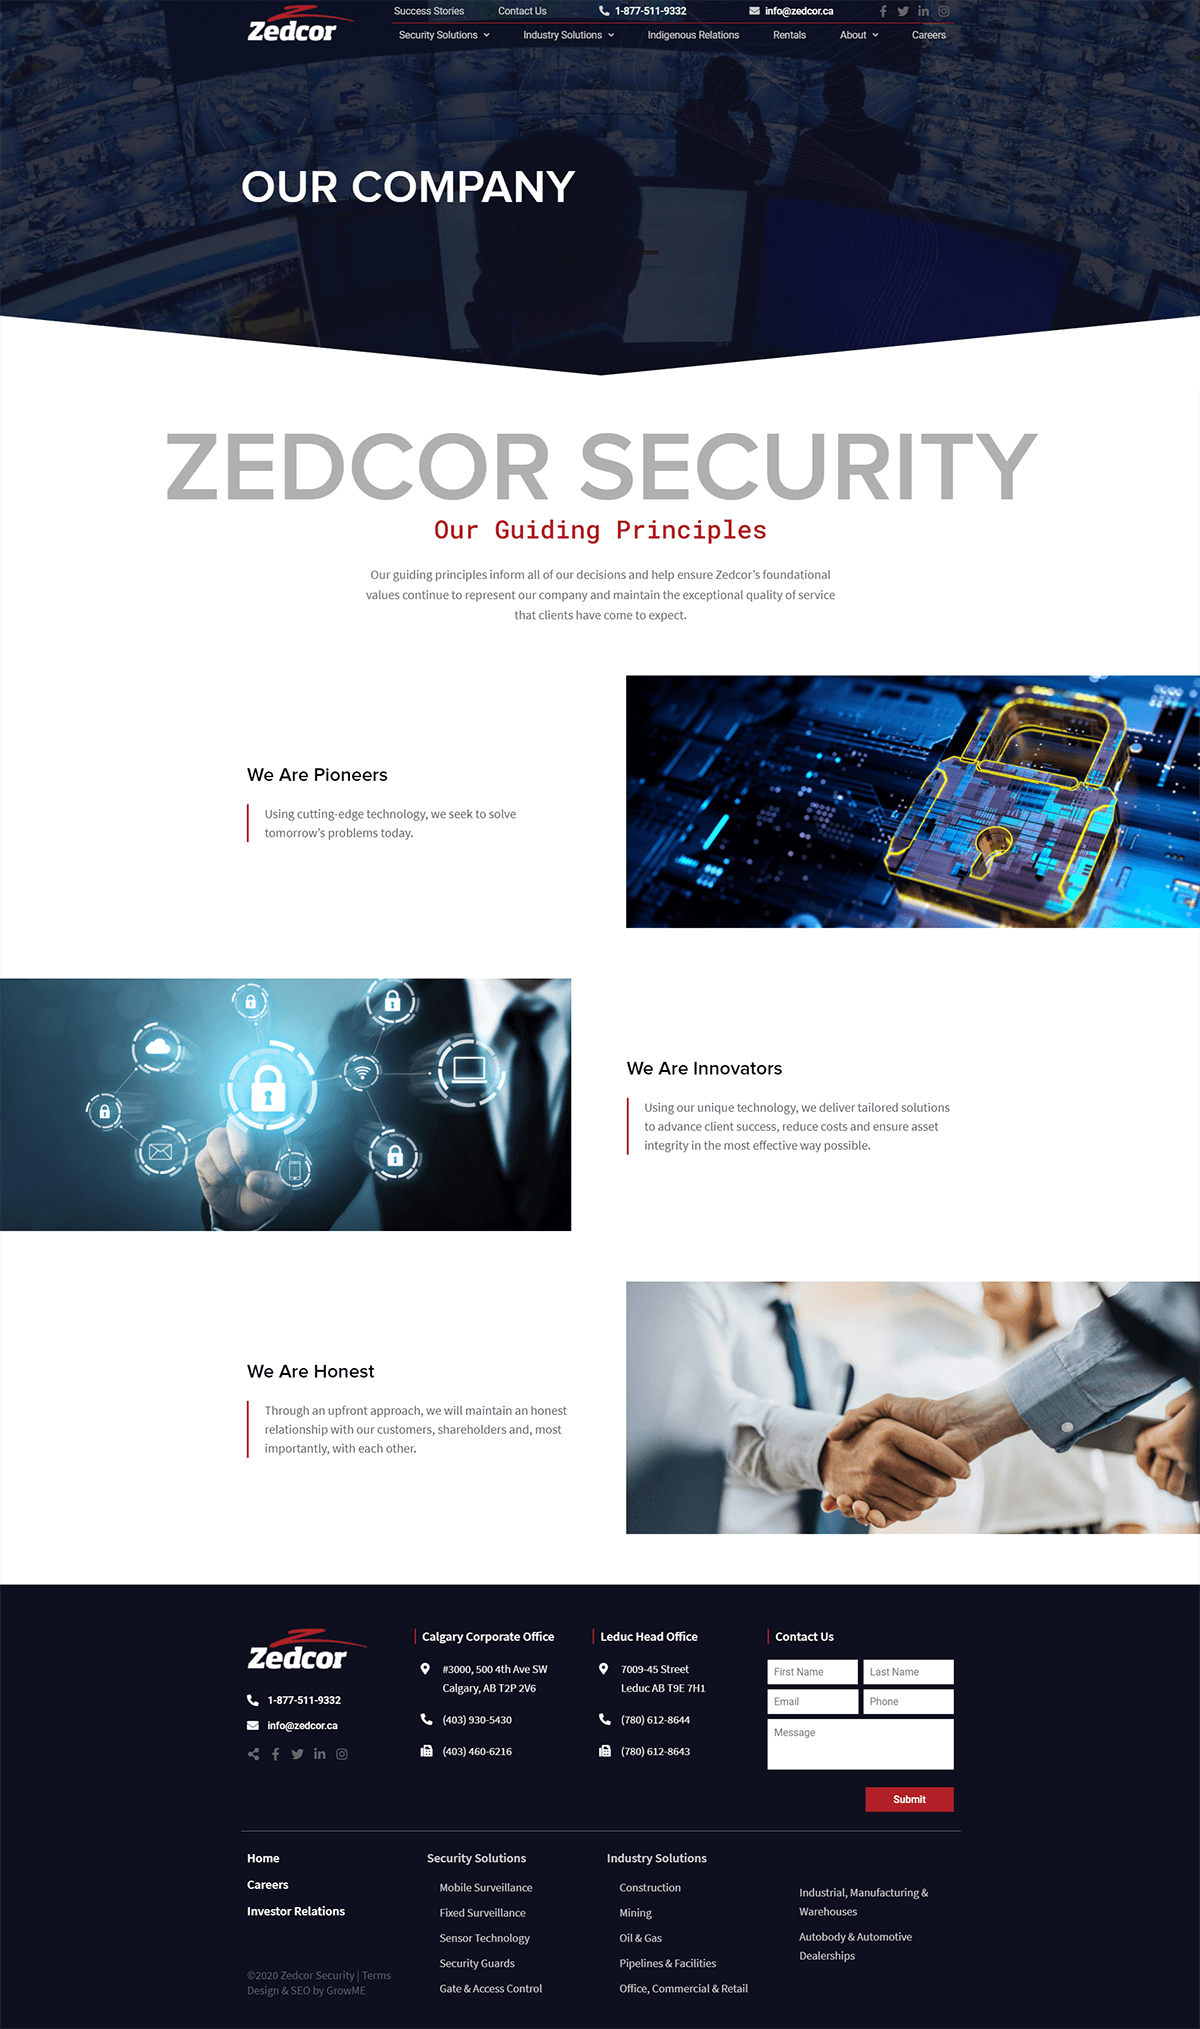 zedcor security about